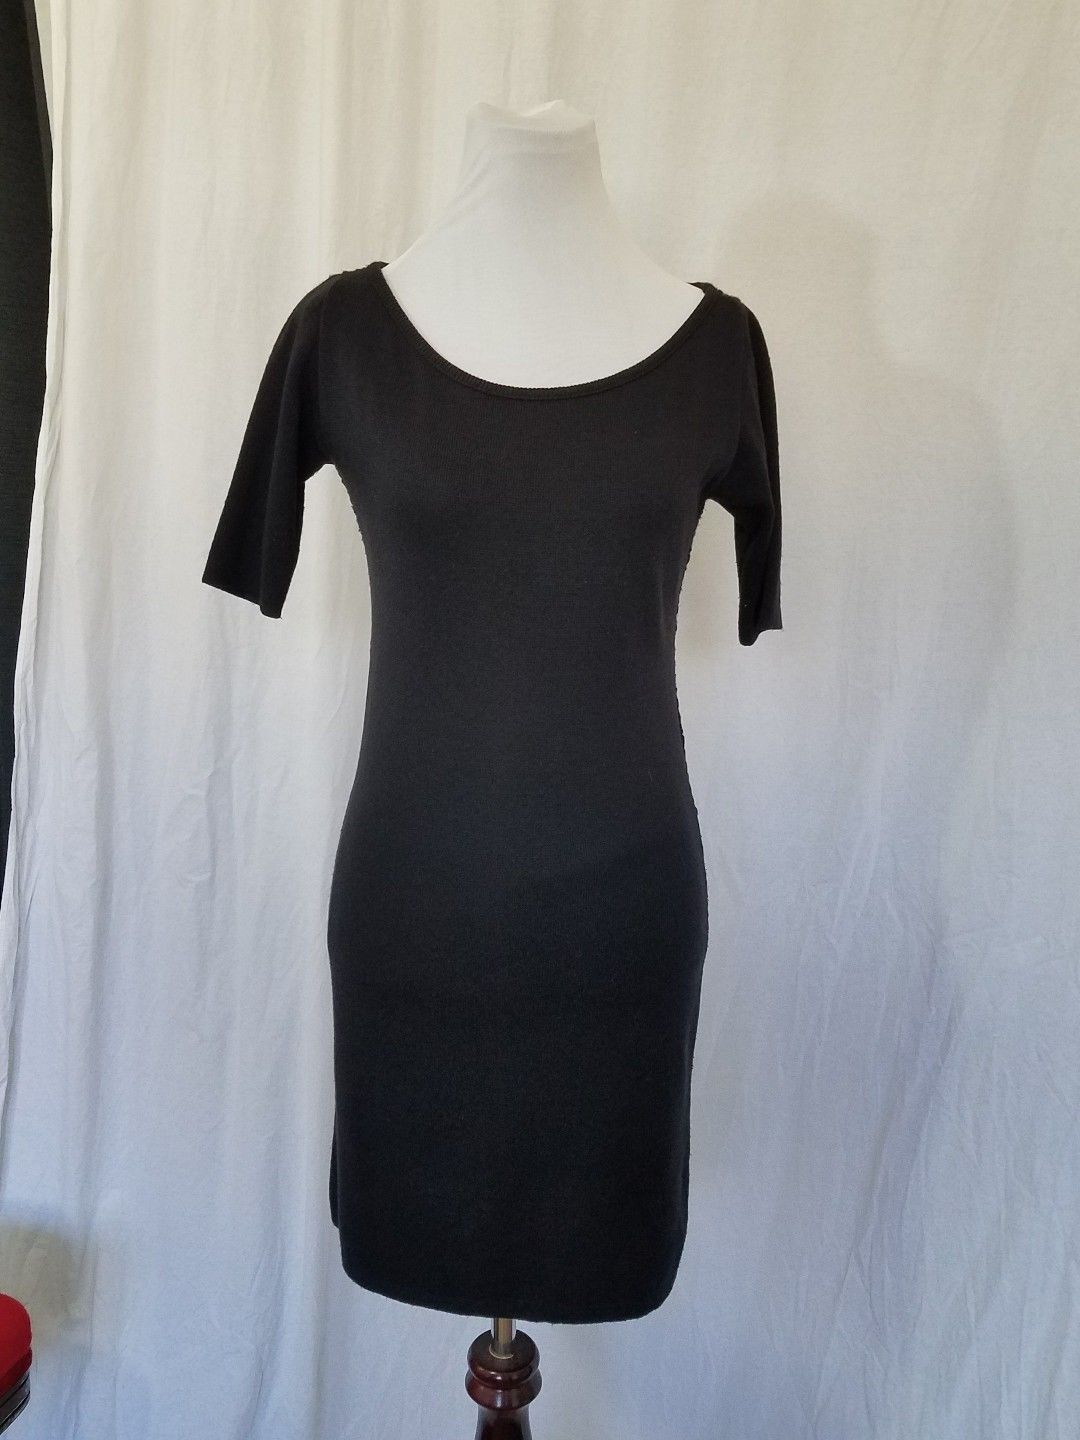 Black Knit Sweater Dress Open Weave Back Knee Length Short Sleeves Size